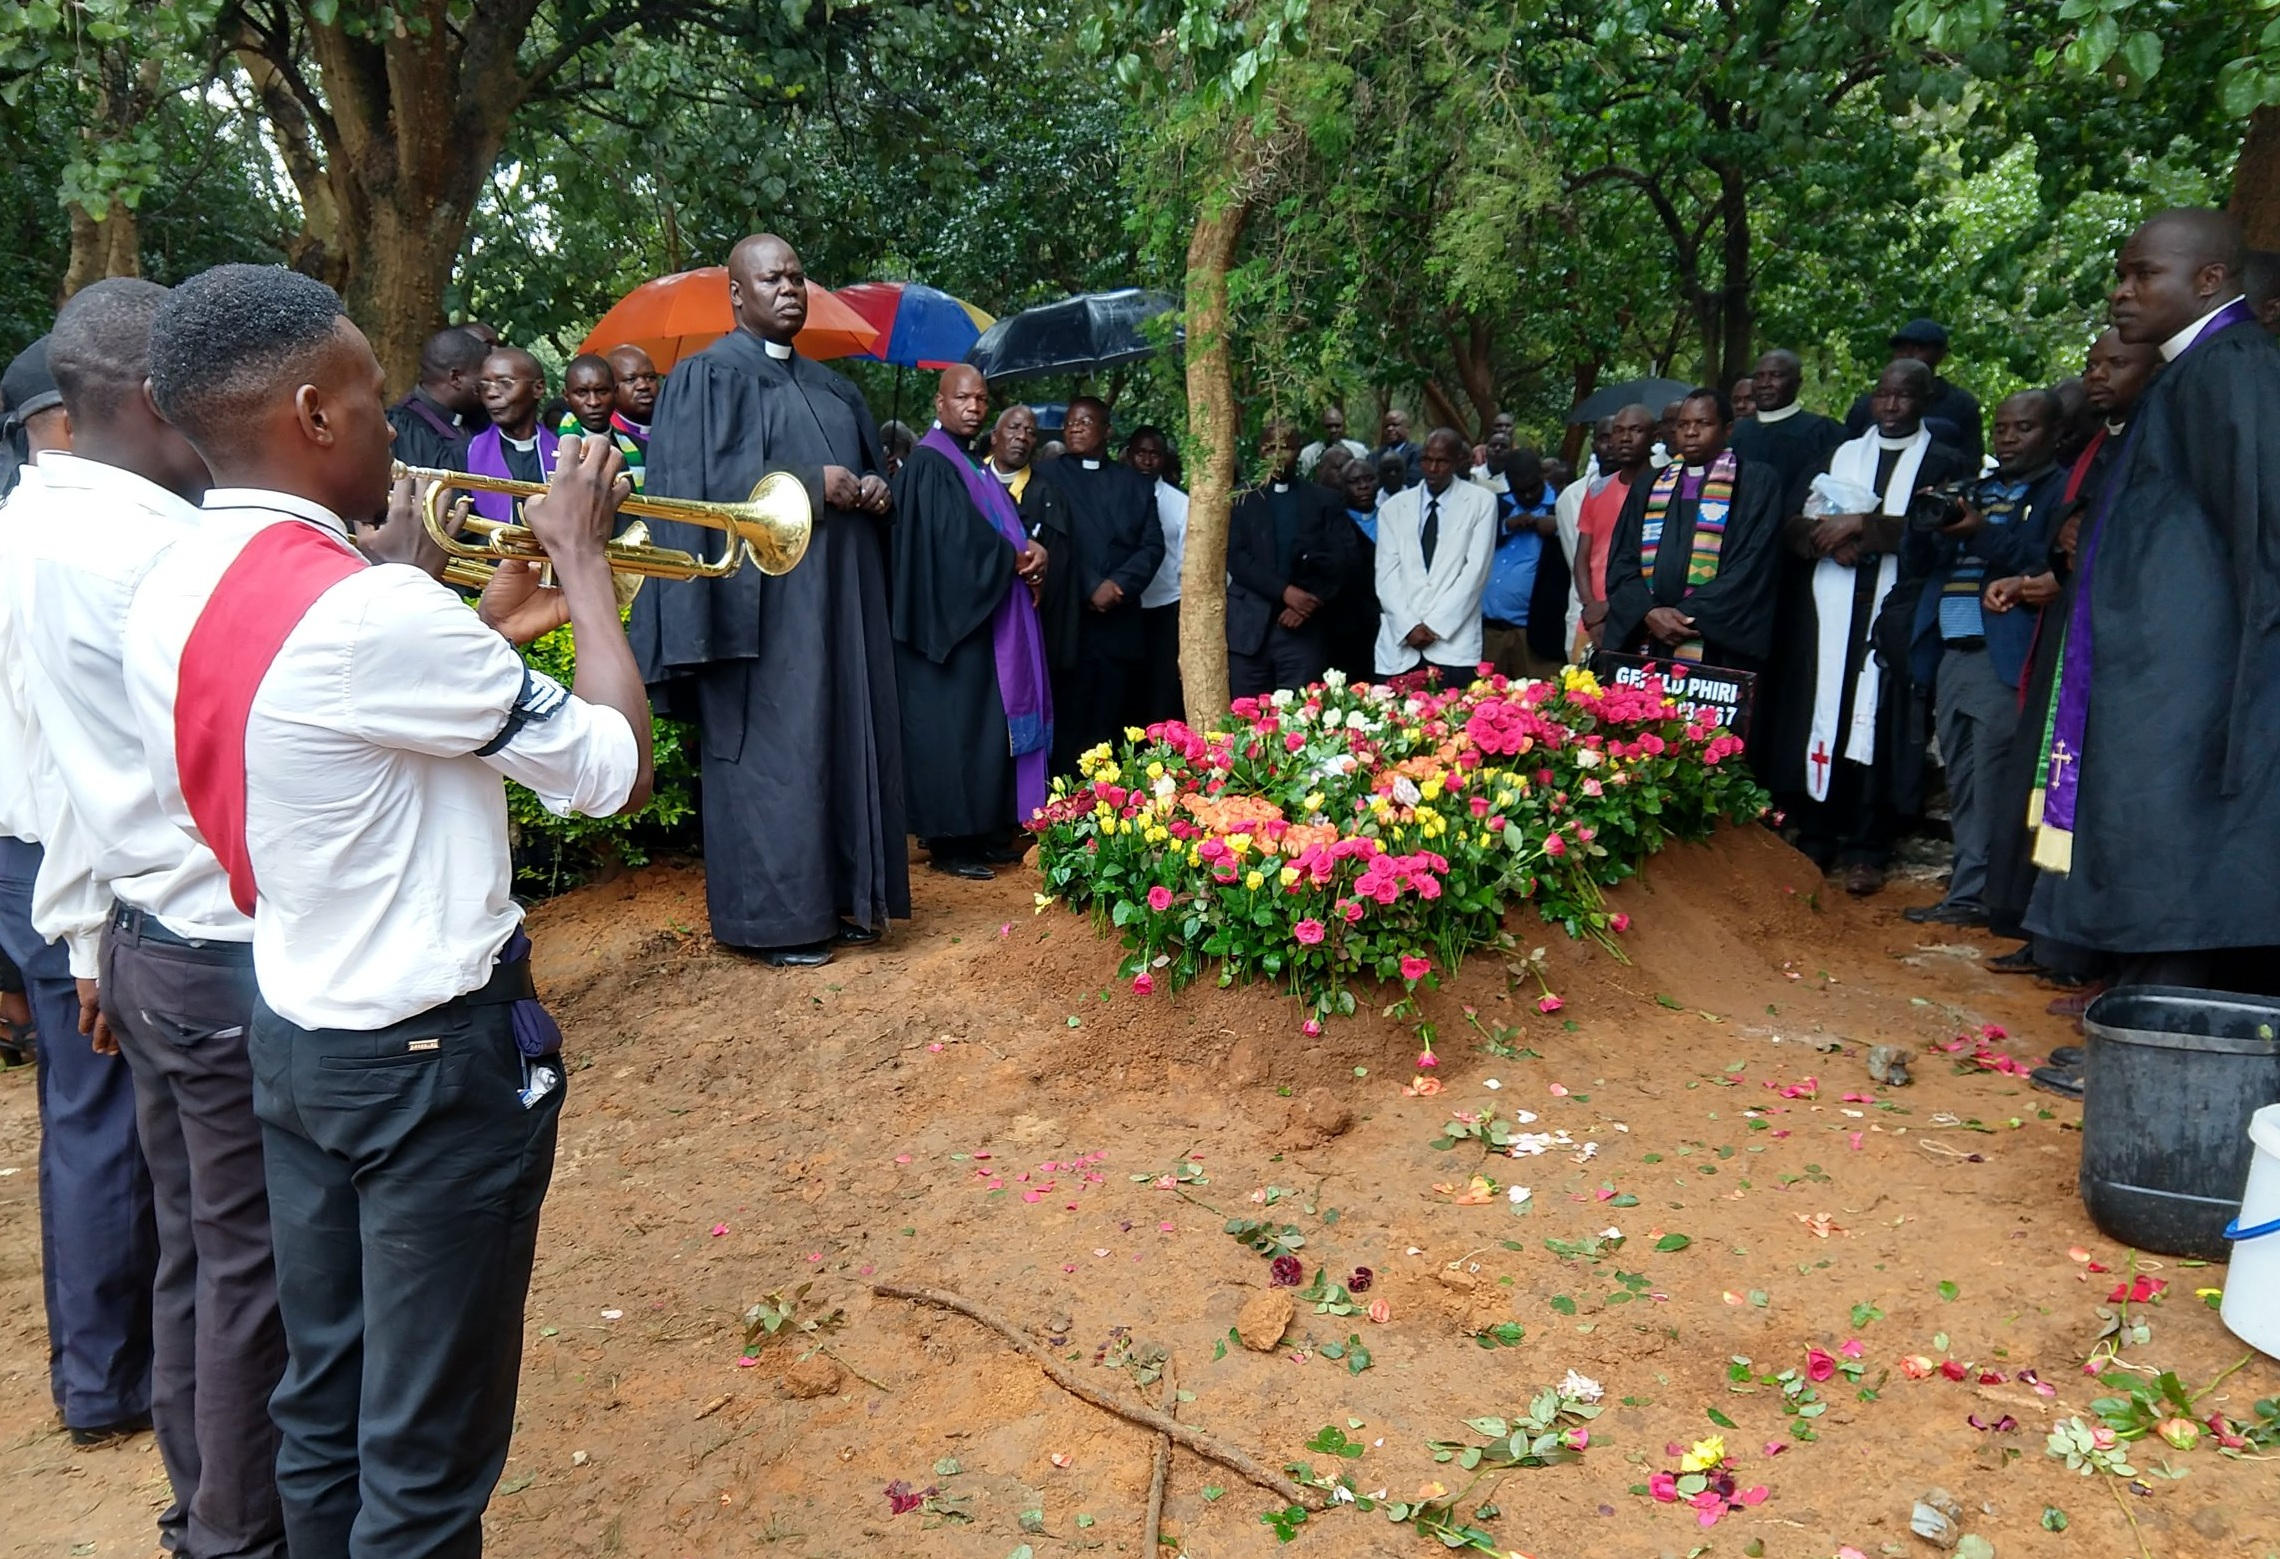 Final goodbye for Rev. Gerald Phiri. A tradition is for friends and loved ones to insert flowers into the earth covering the grave.